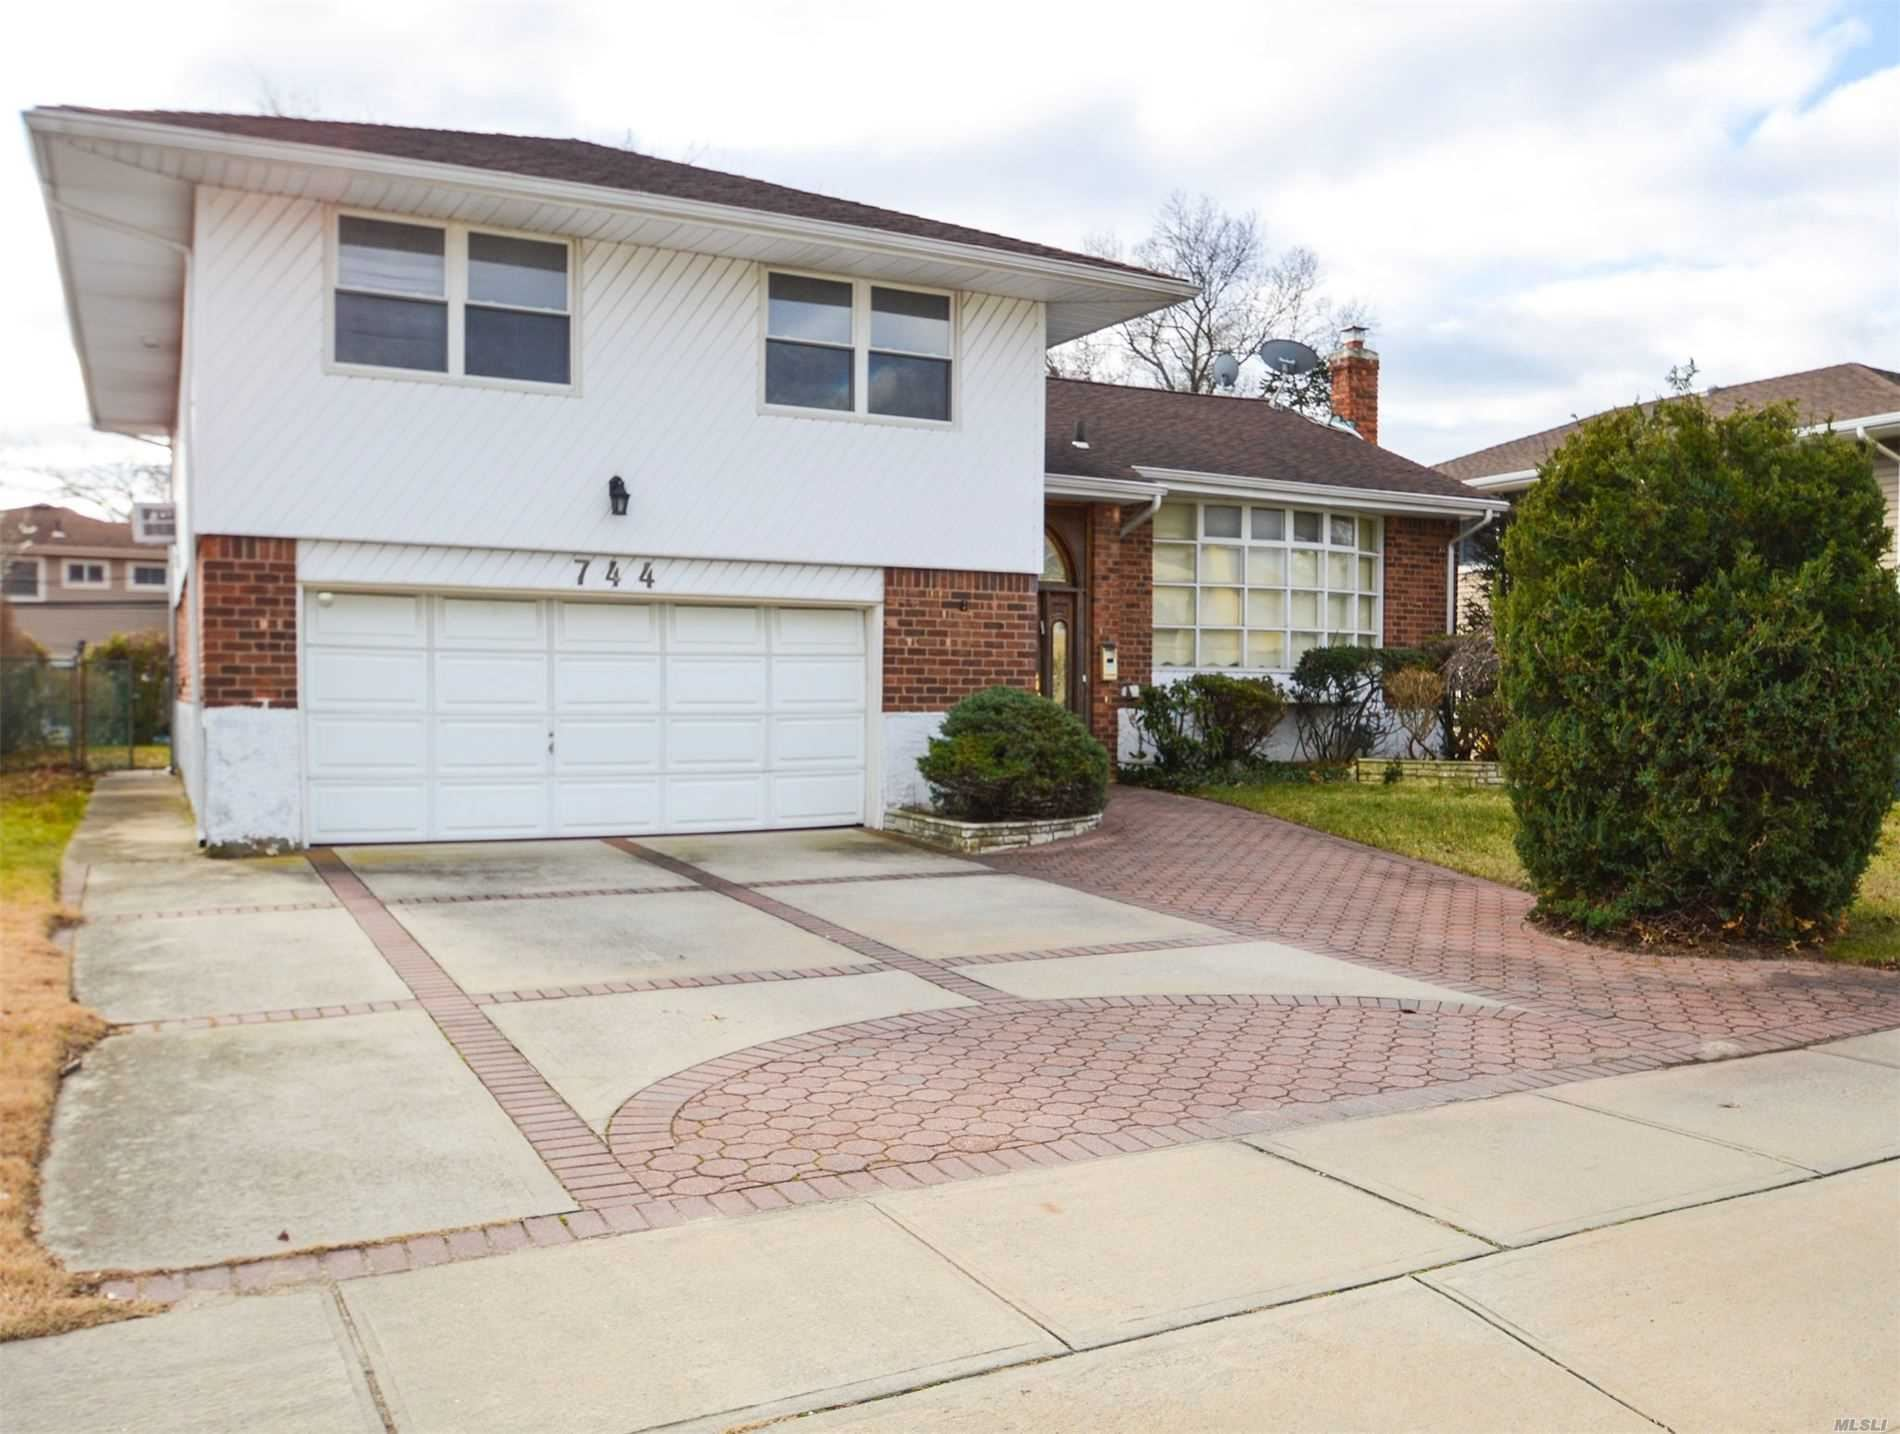 744 Hillcrest Place, Hempstead, NY 11581 - MLS#: 3189759